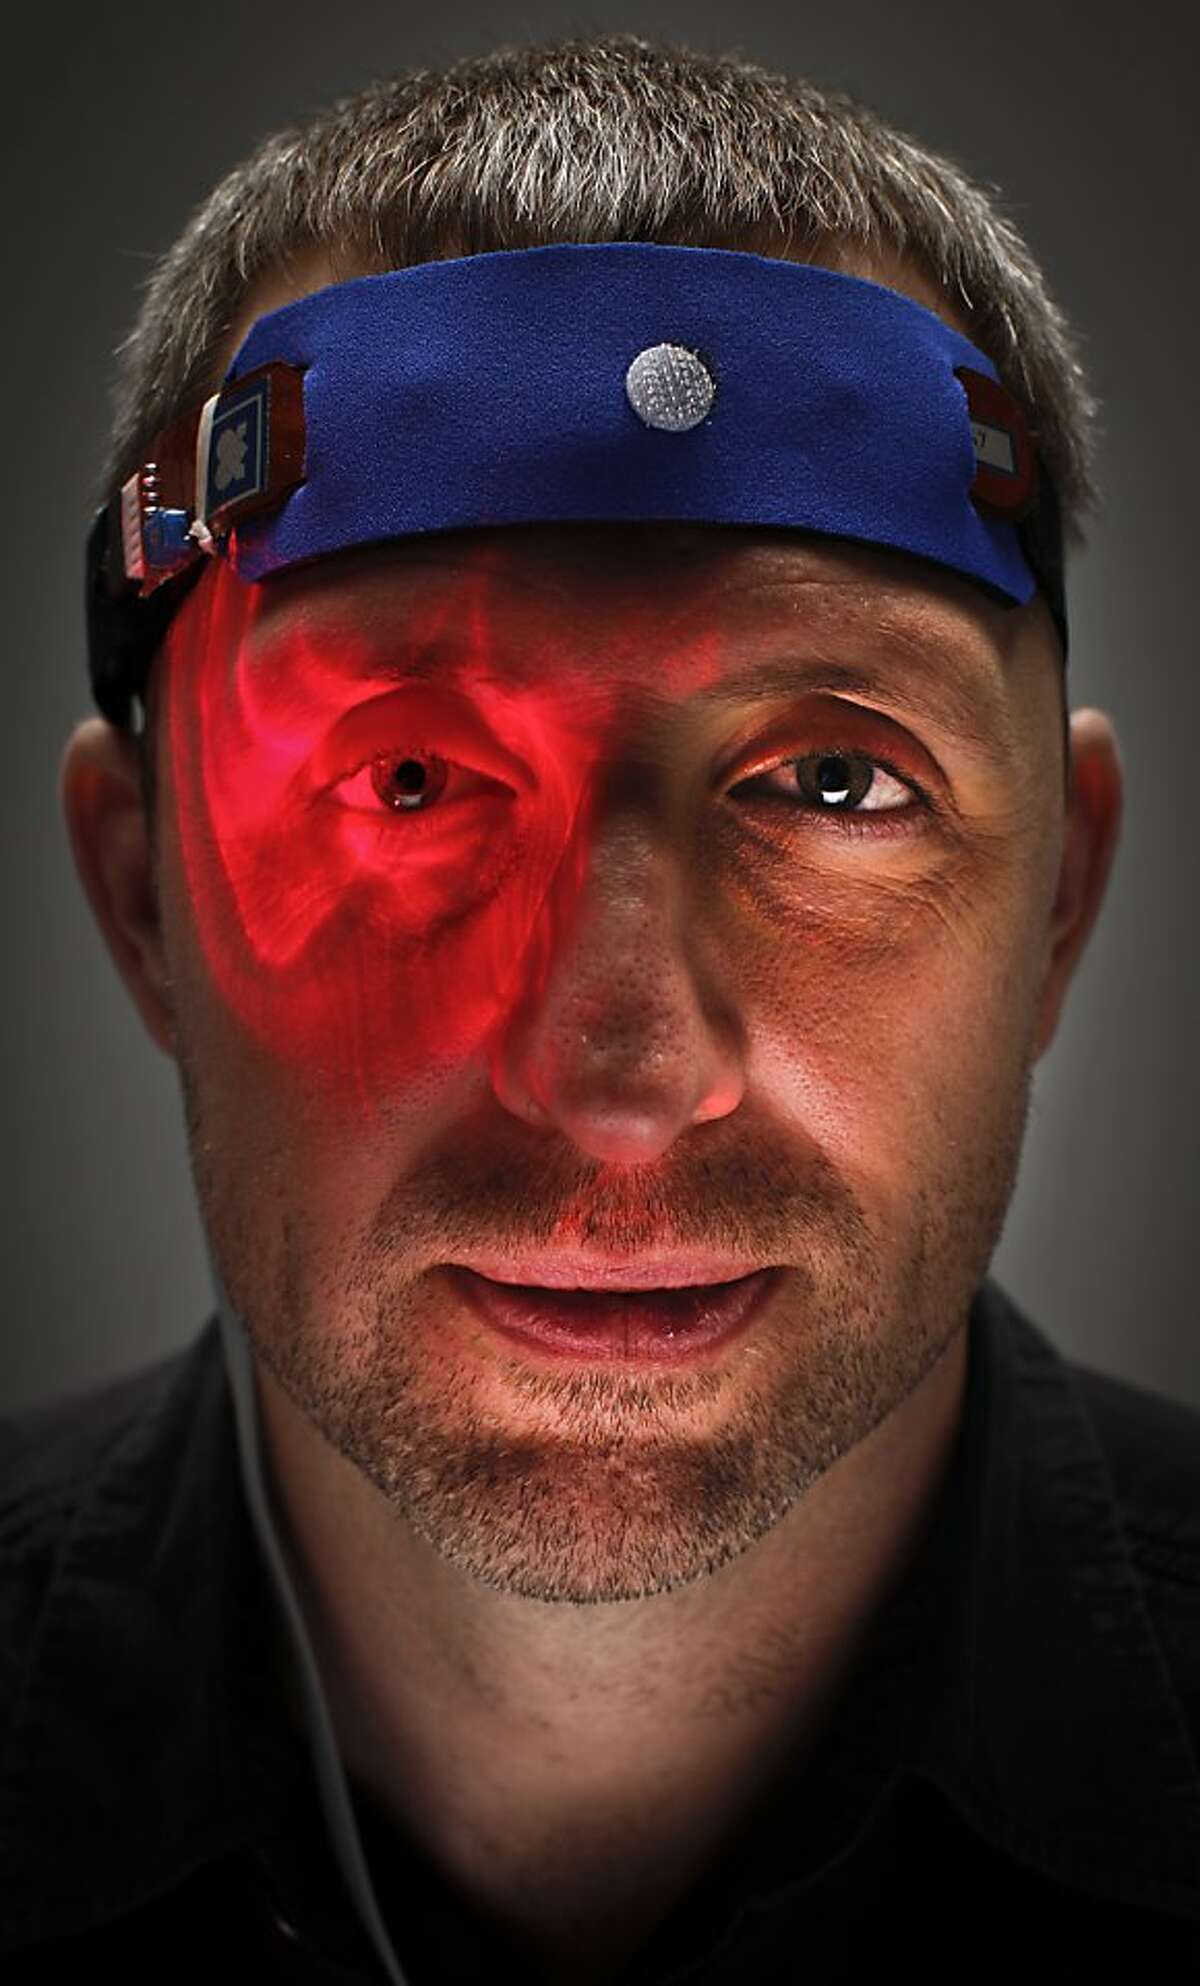 Dave Asprey, seen on Wednesday, June 6, 2012 in San Francisco, Calif., is considered a guru of the biohacking movement. Asprey has helped develop a prototype HEG (Hemoencephalography ) neurofeedback device that helps train the brain, and he also uses a soliton laser which helps with healing.